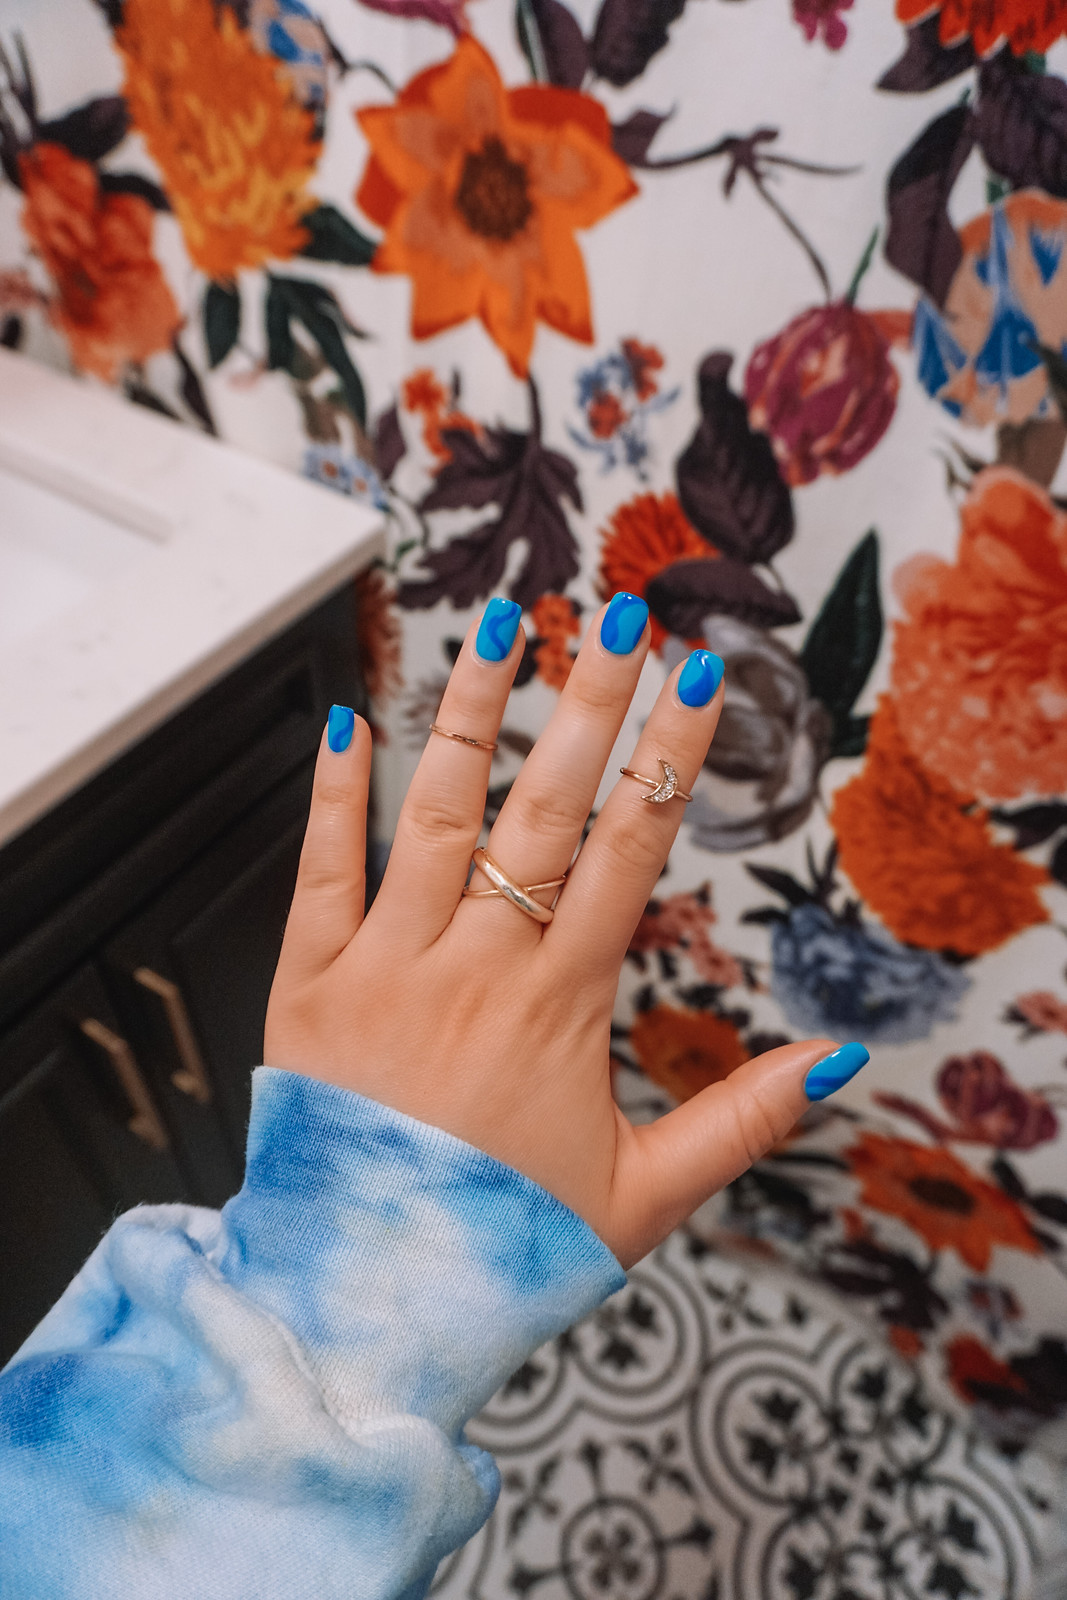 Manicure of the Month : Blue Wave Nail Design | Blue Squiggly Line Nail Art | Summer 2020 Nails | Manicure Ideas | Blue Mani | Color Gel Manicure | Nails 2020 Trends | Short Acrylic Nails